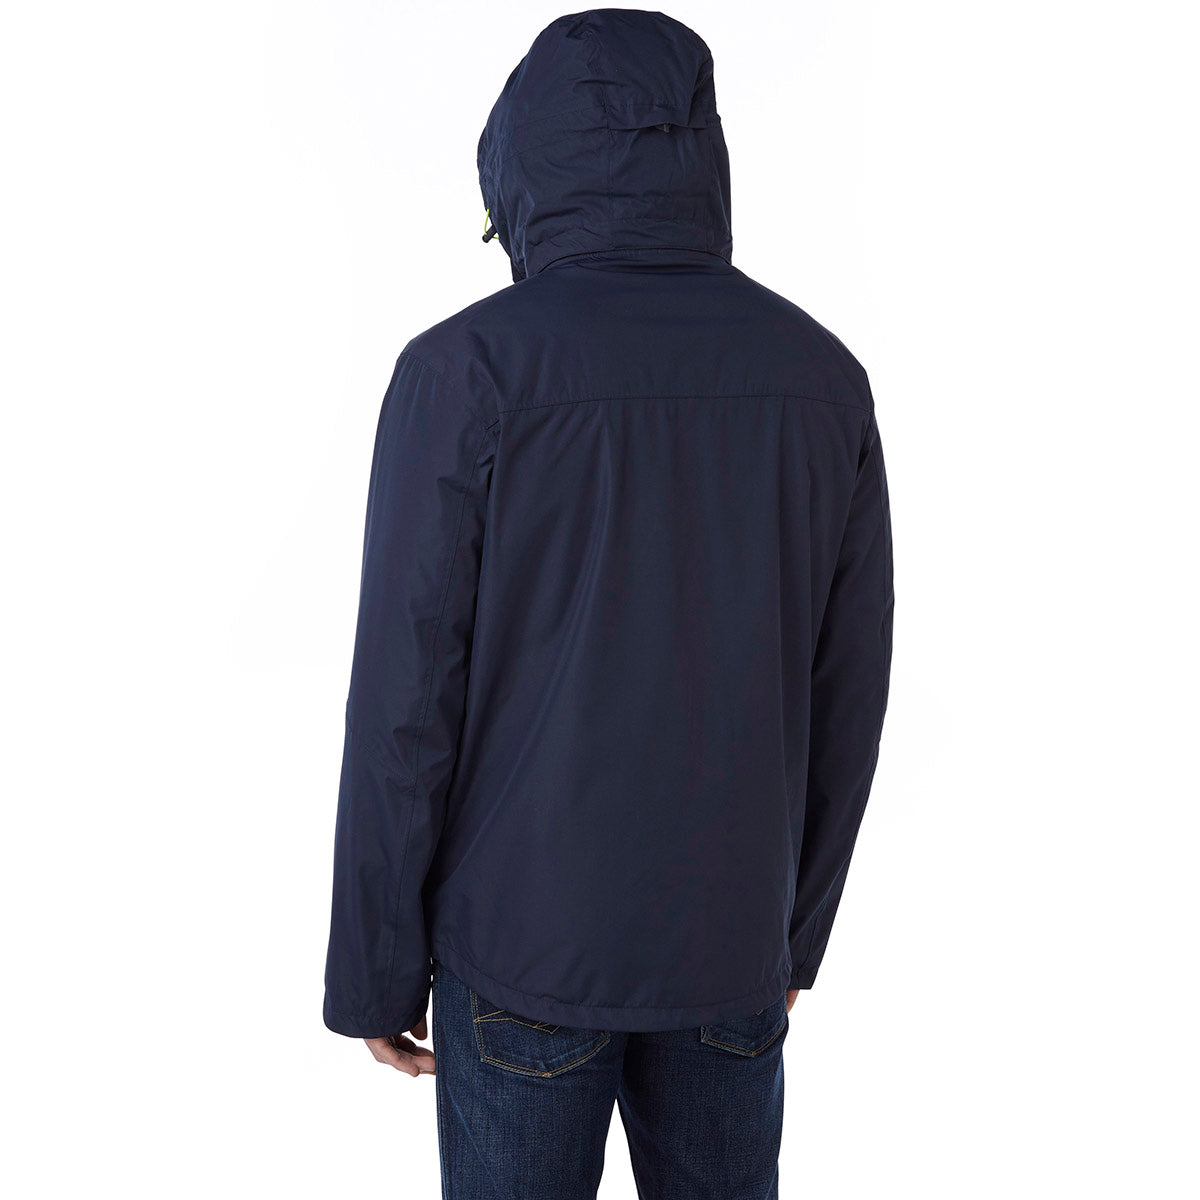 Prism Mens Milatex 3-in-1 Jacket - Navy image 4